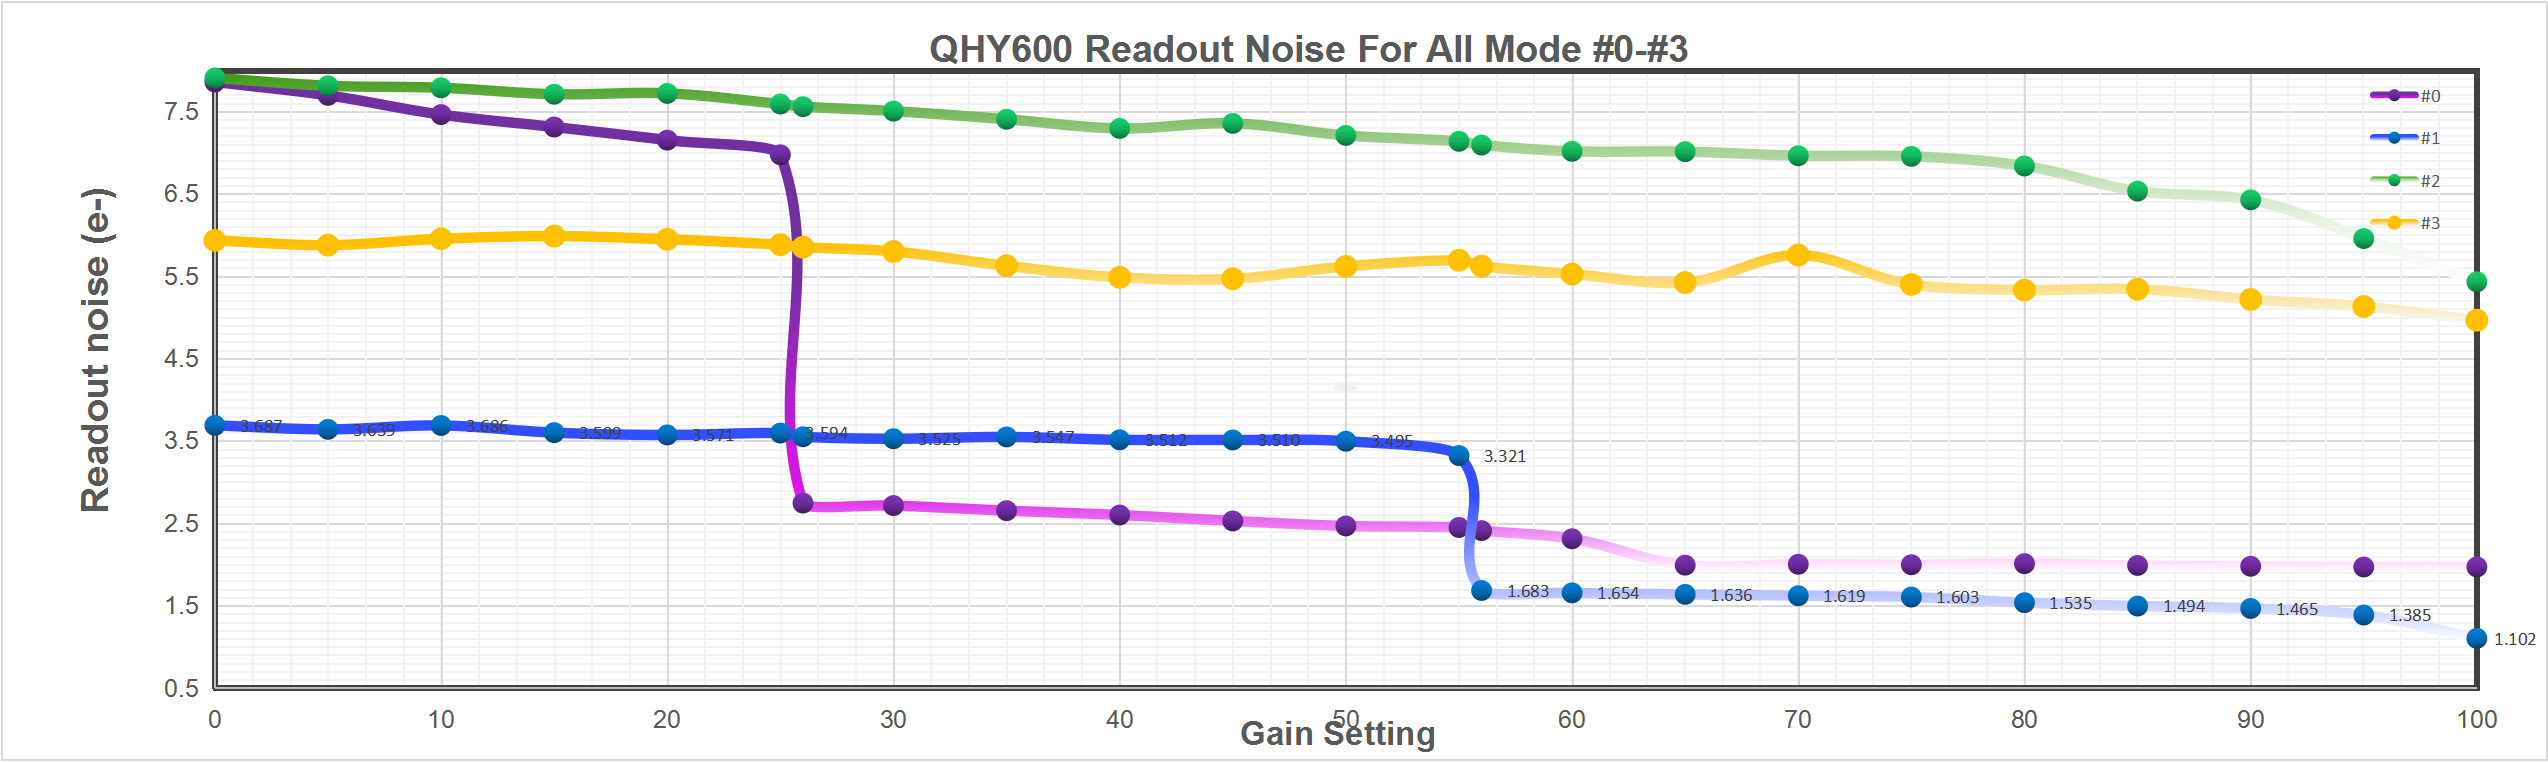 QHY600 Readout Noise all mode